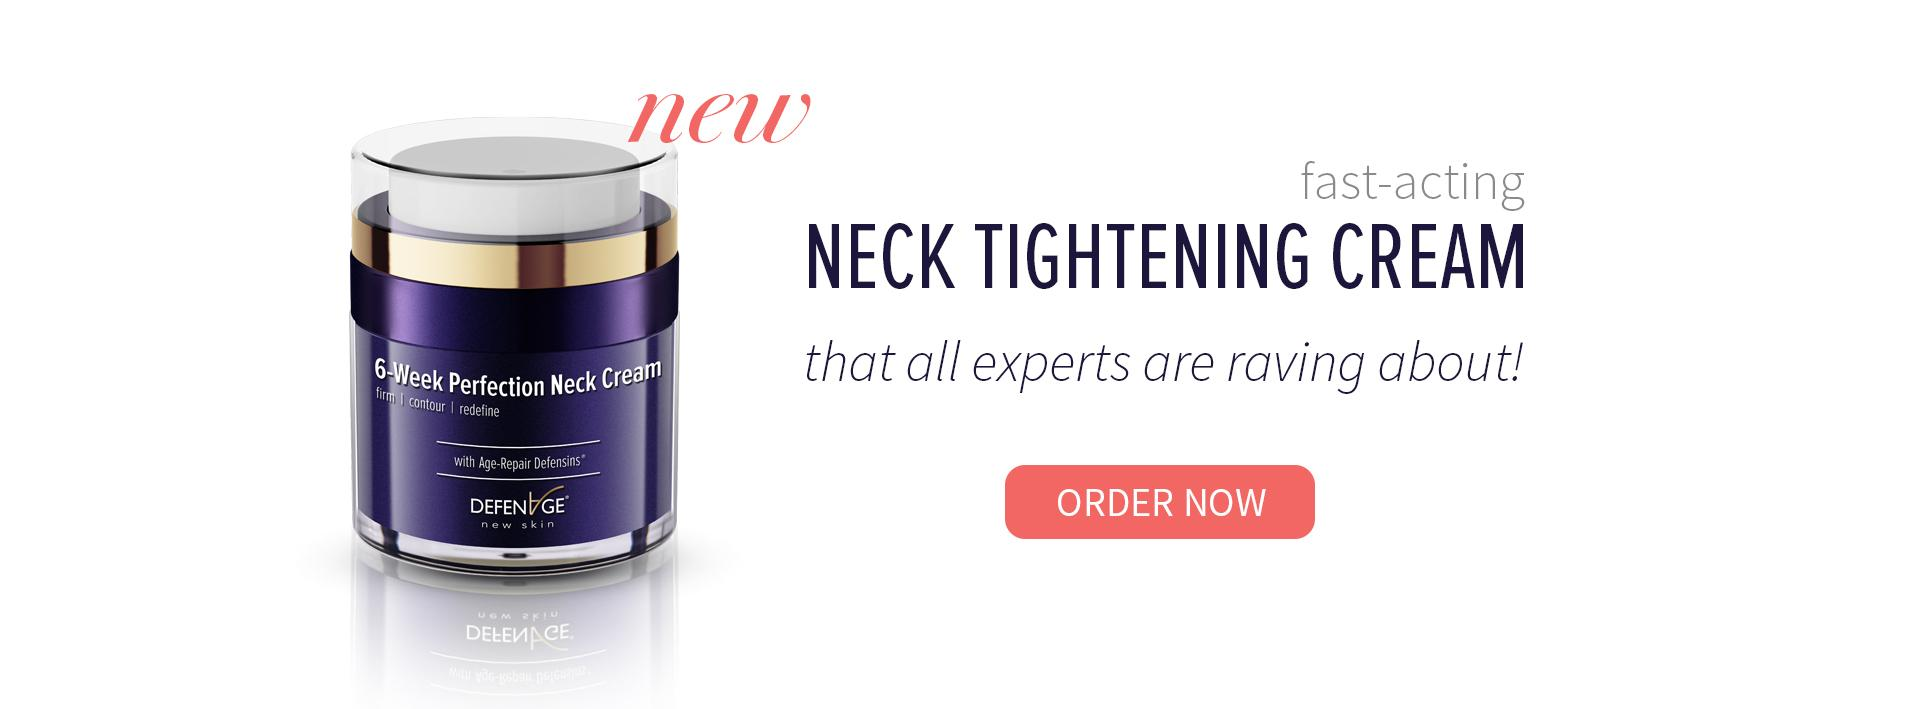 New Neck Tightening Cream